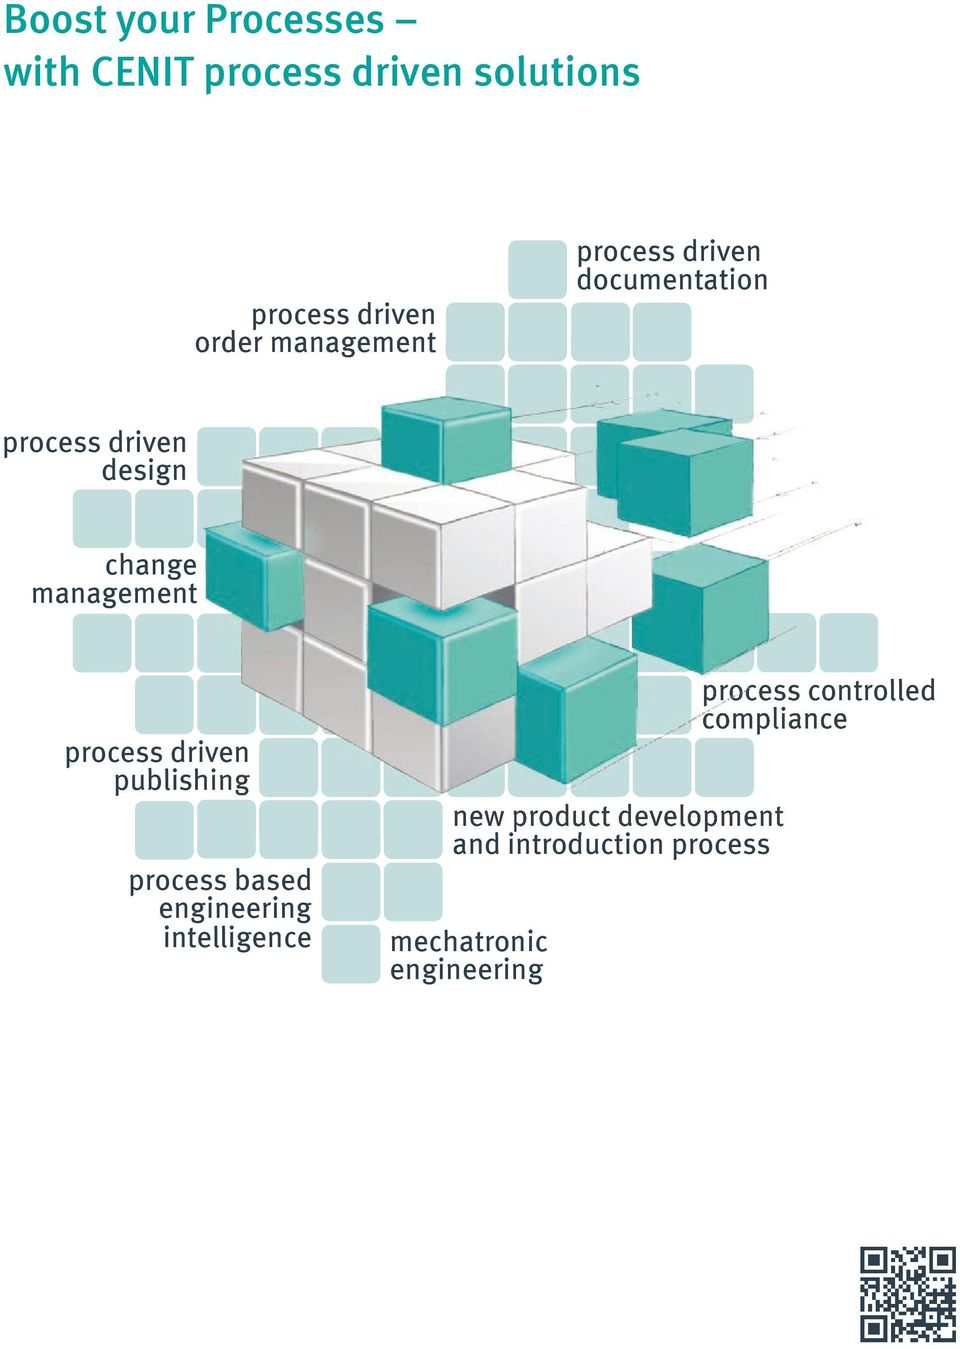 based engineering intelligence new product development and